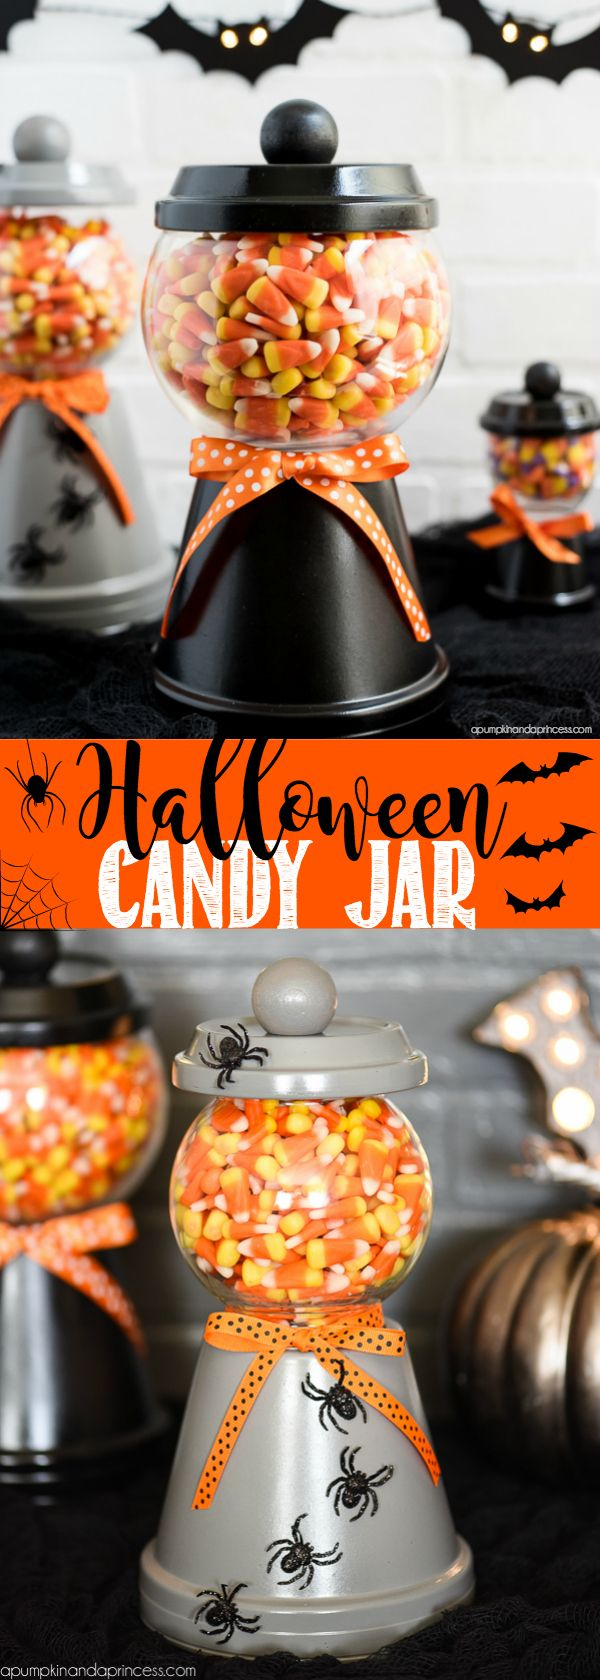 how to make a halloween candy jar made out of a terra cotta pot saucer a glass bowl and wooden knob perfect for decorating and displaying your favorite - Images Of Halloween Decorations